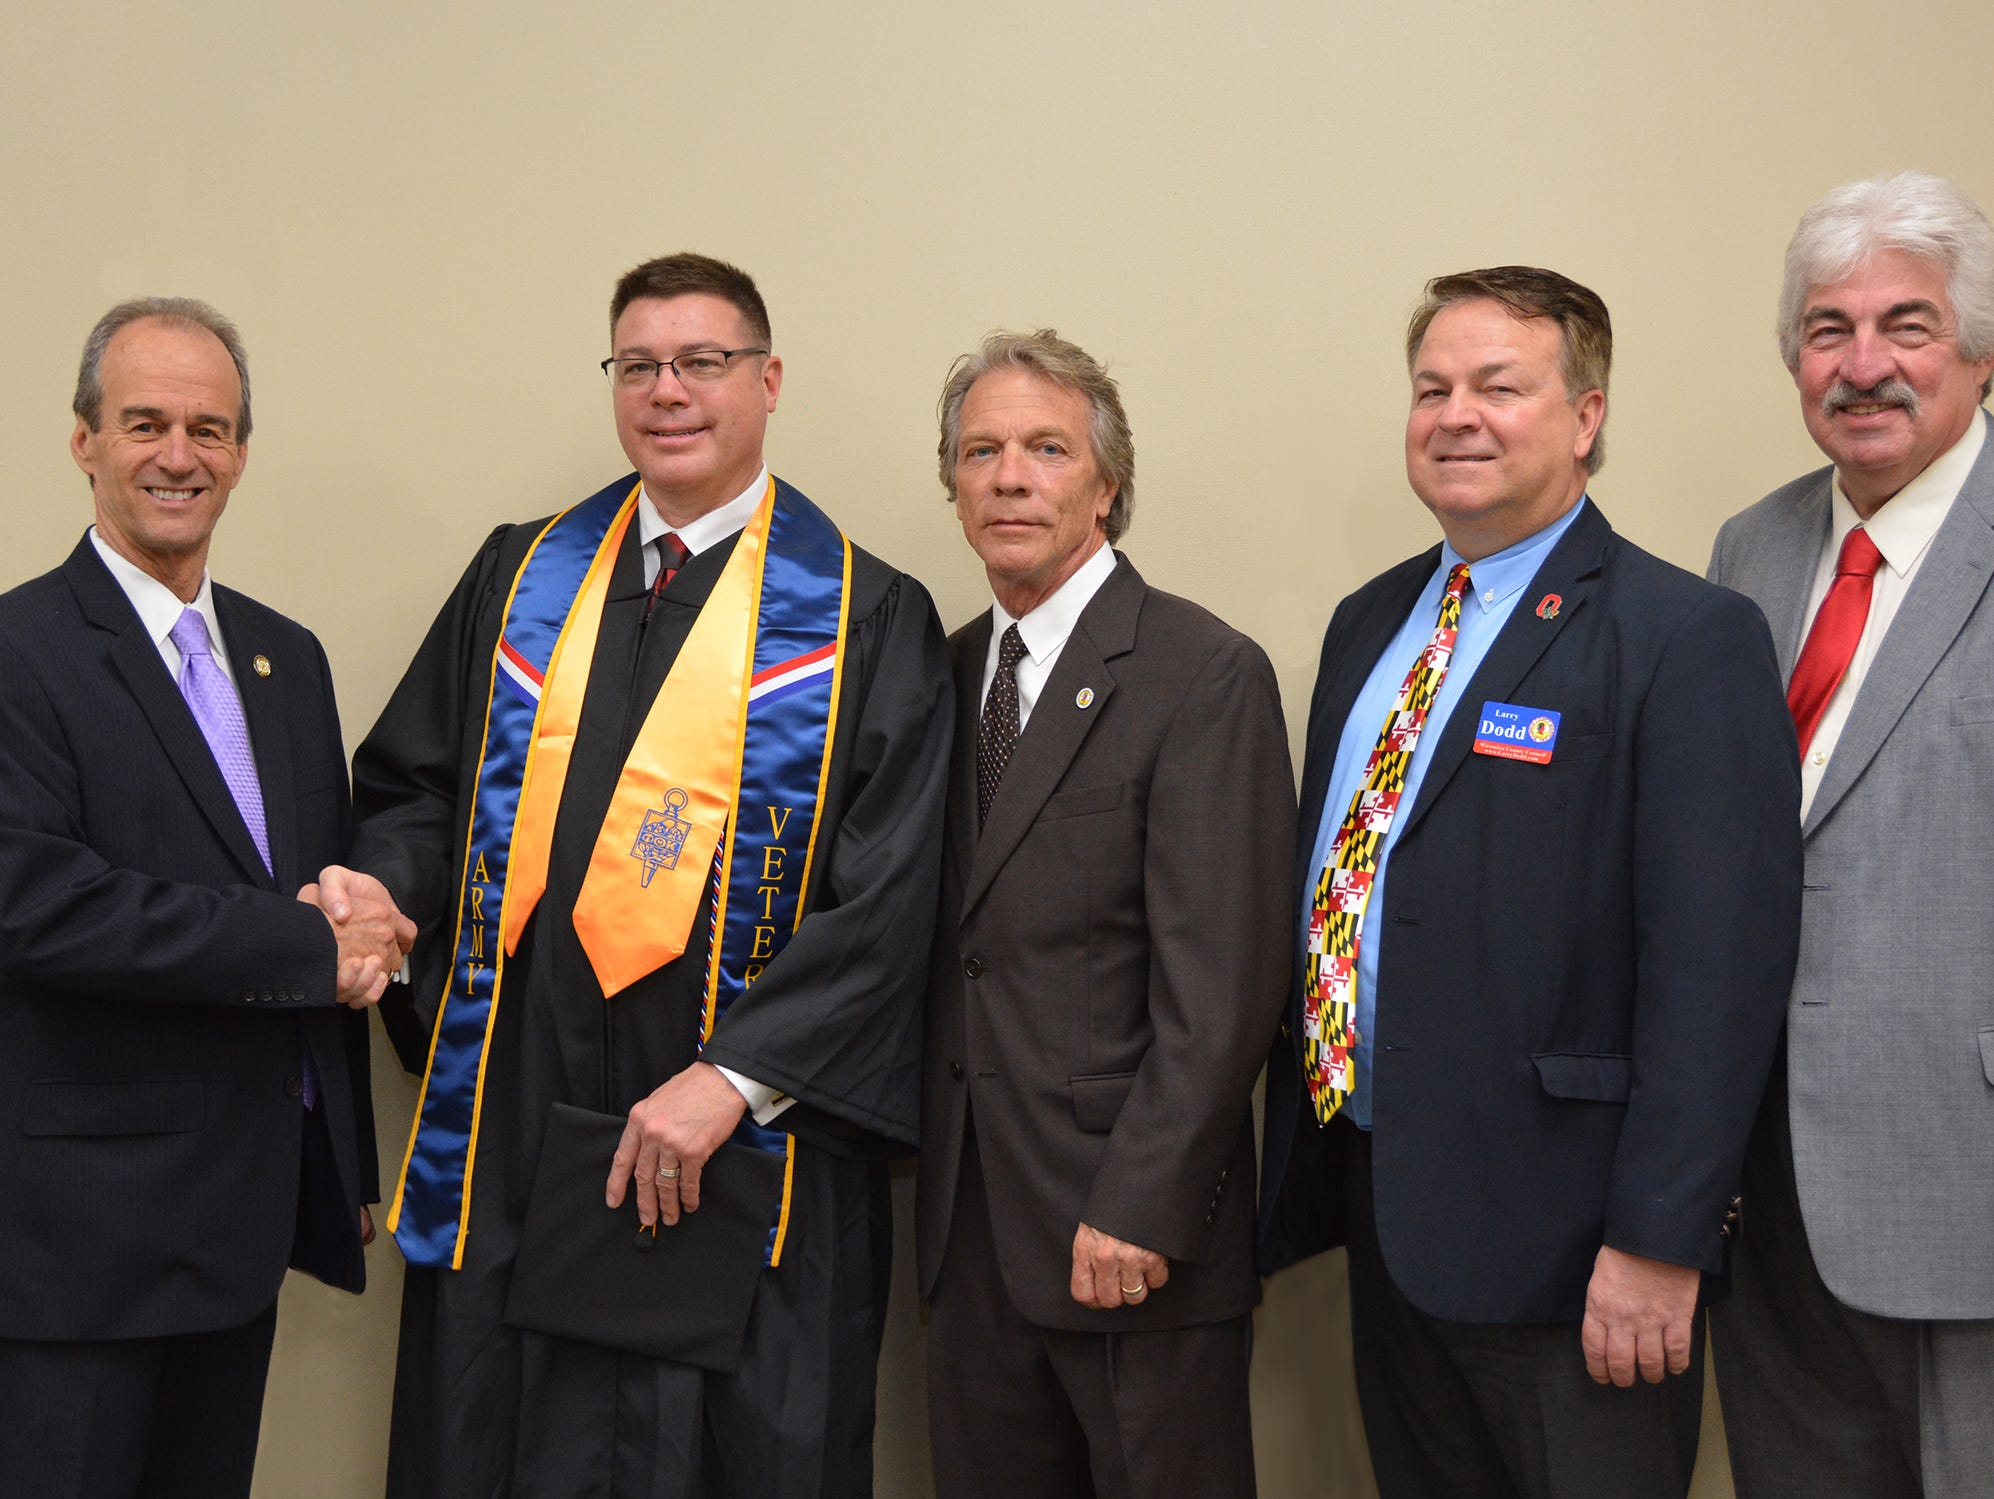 Wicomico County Executive Bob Culver congratulates Lt. Howard Drewer of the Salisbury Police Department who received his criminal justice degree at Wor-Wic Community College commencement exercises, as John Cannon, Wicomico County council president, Larry Dodd, council vice president, and Joe Holloway, council member, look on.